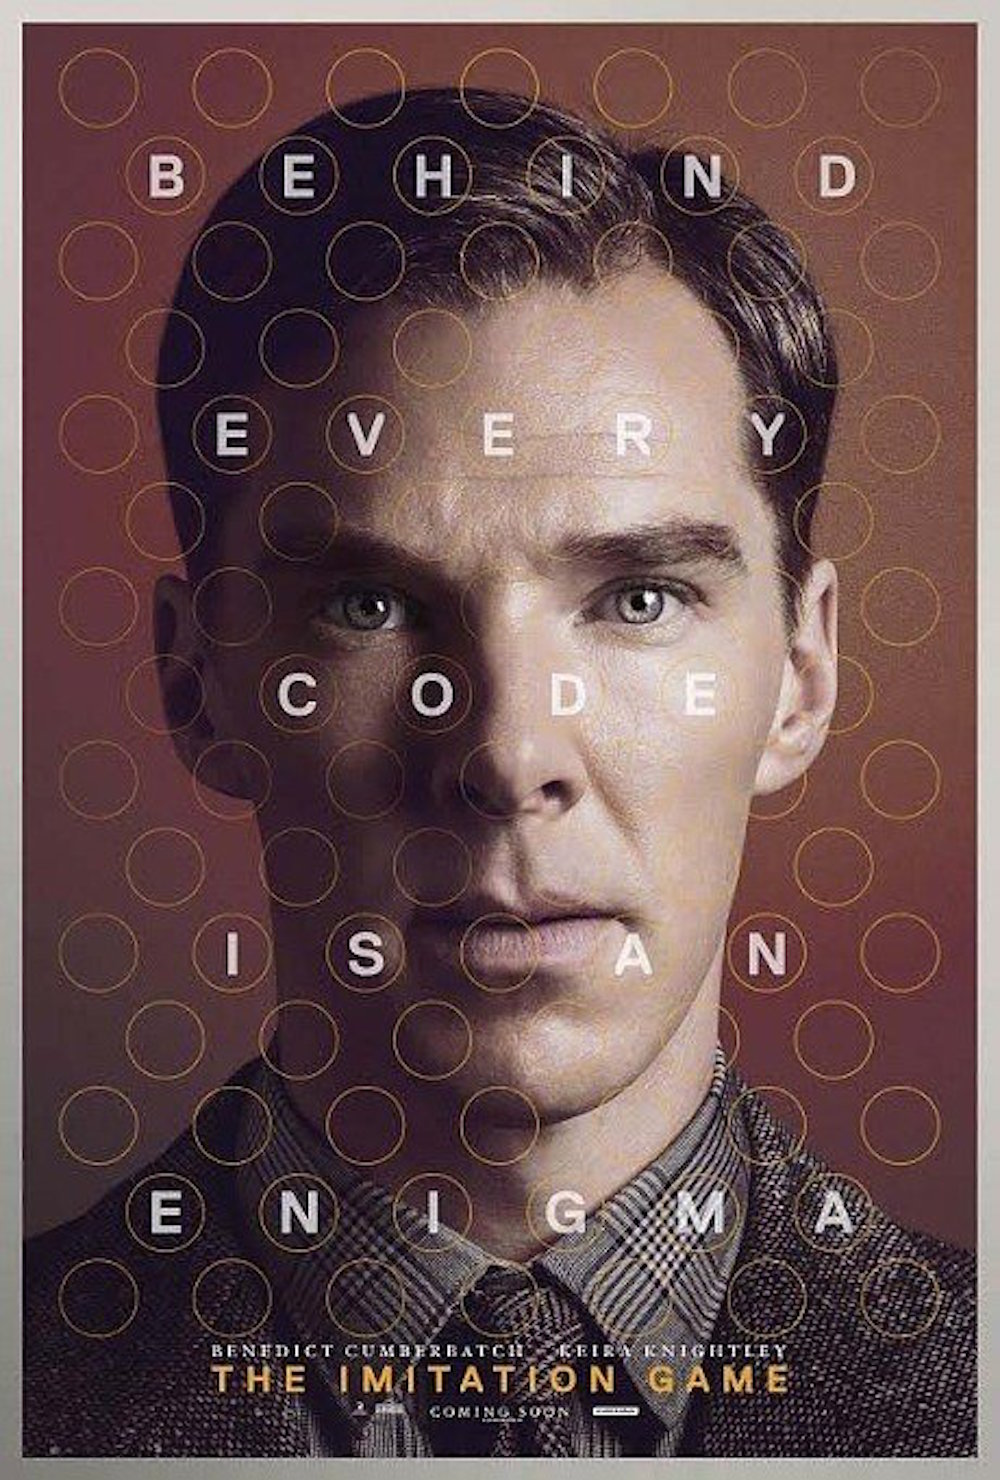 The Imitation Game - Official Trailer